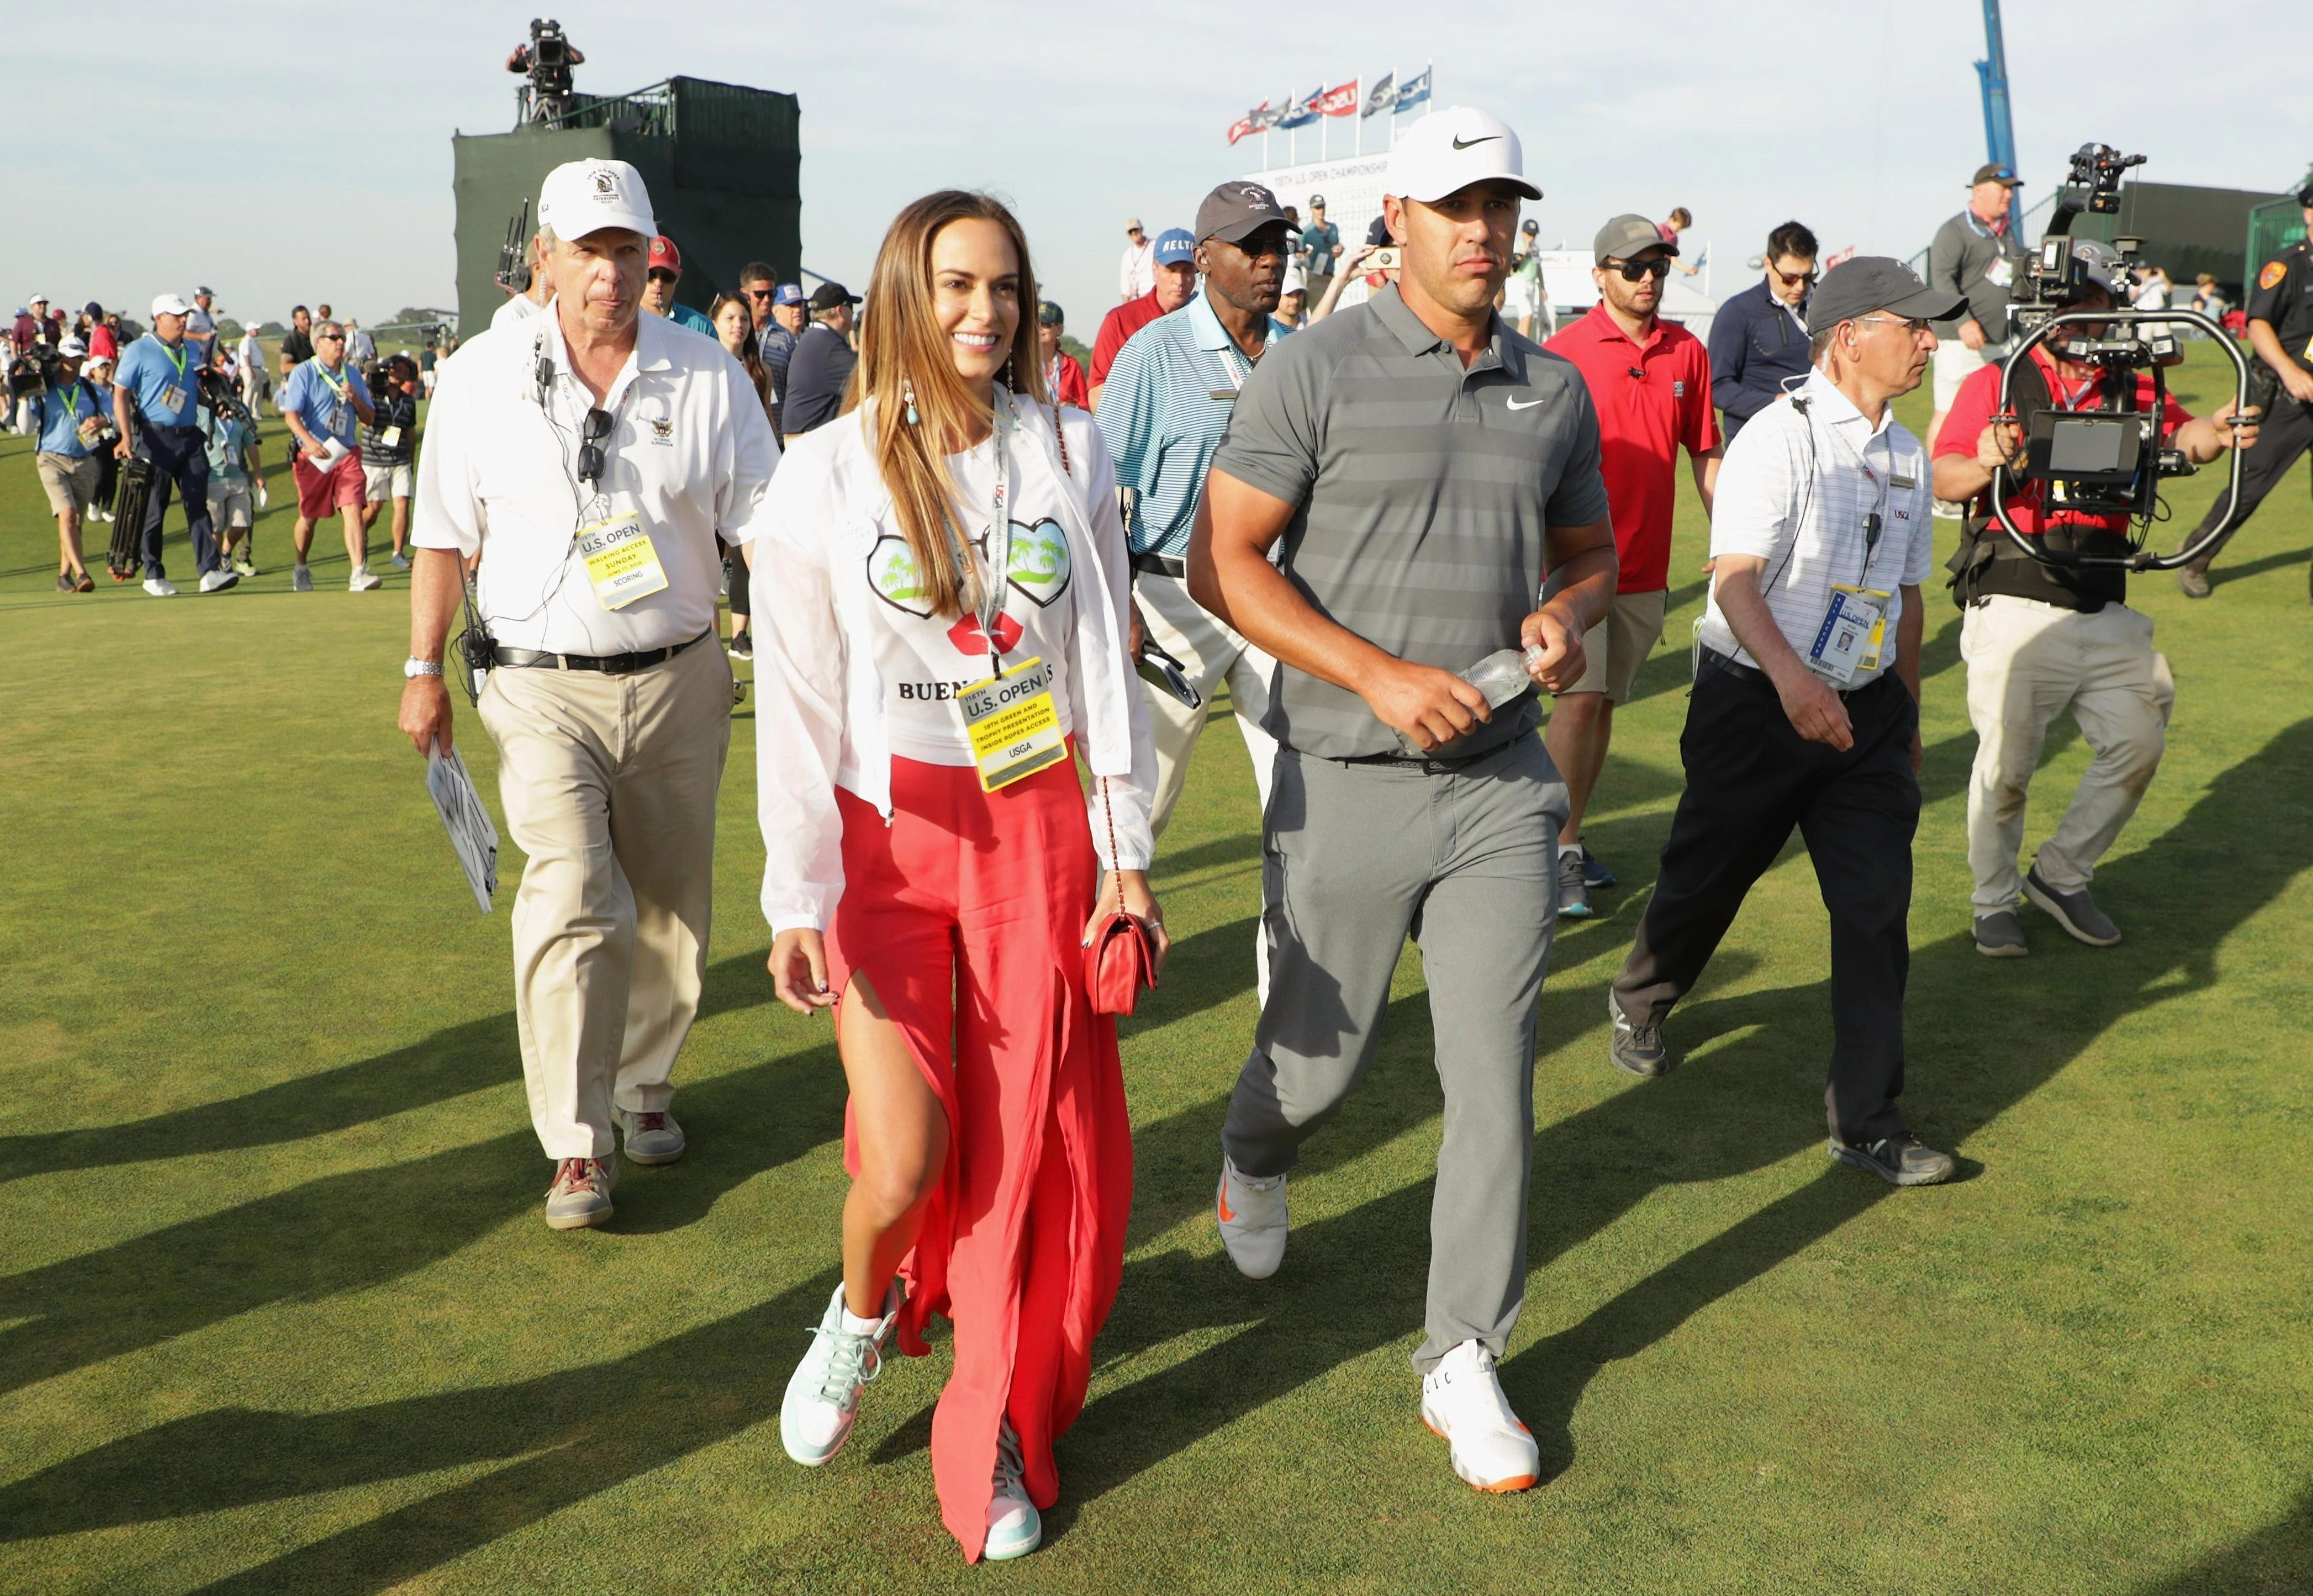 Brooks Koepka was cheered on by his girlfriend Jena Sims